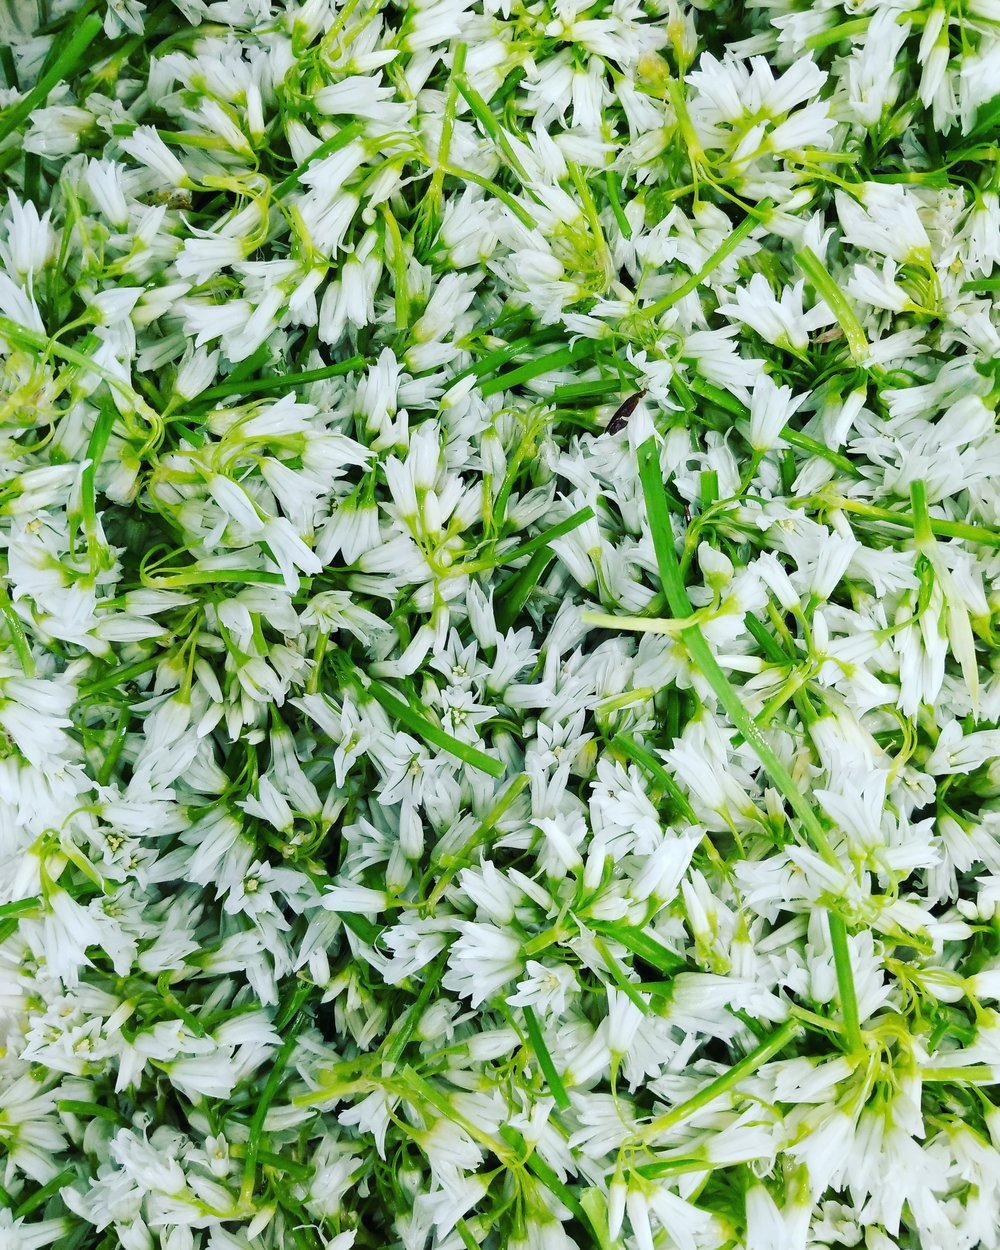 Pretty Spring Onion Blossoms